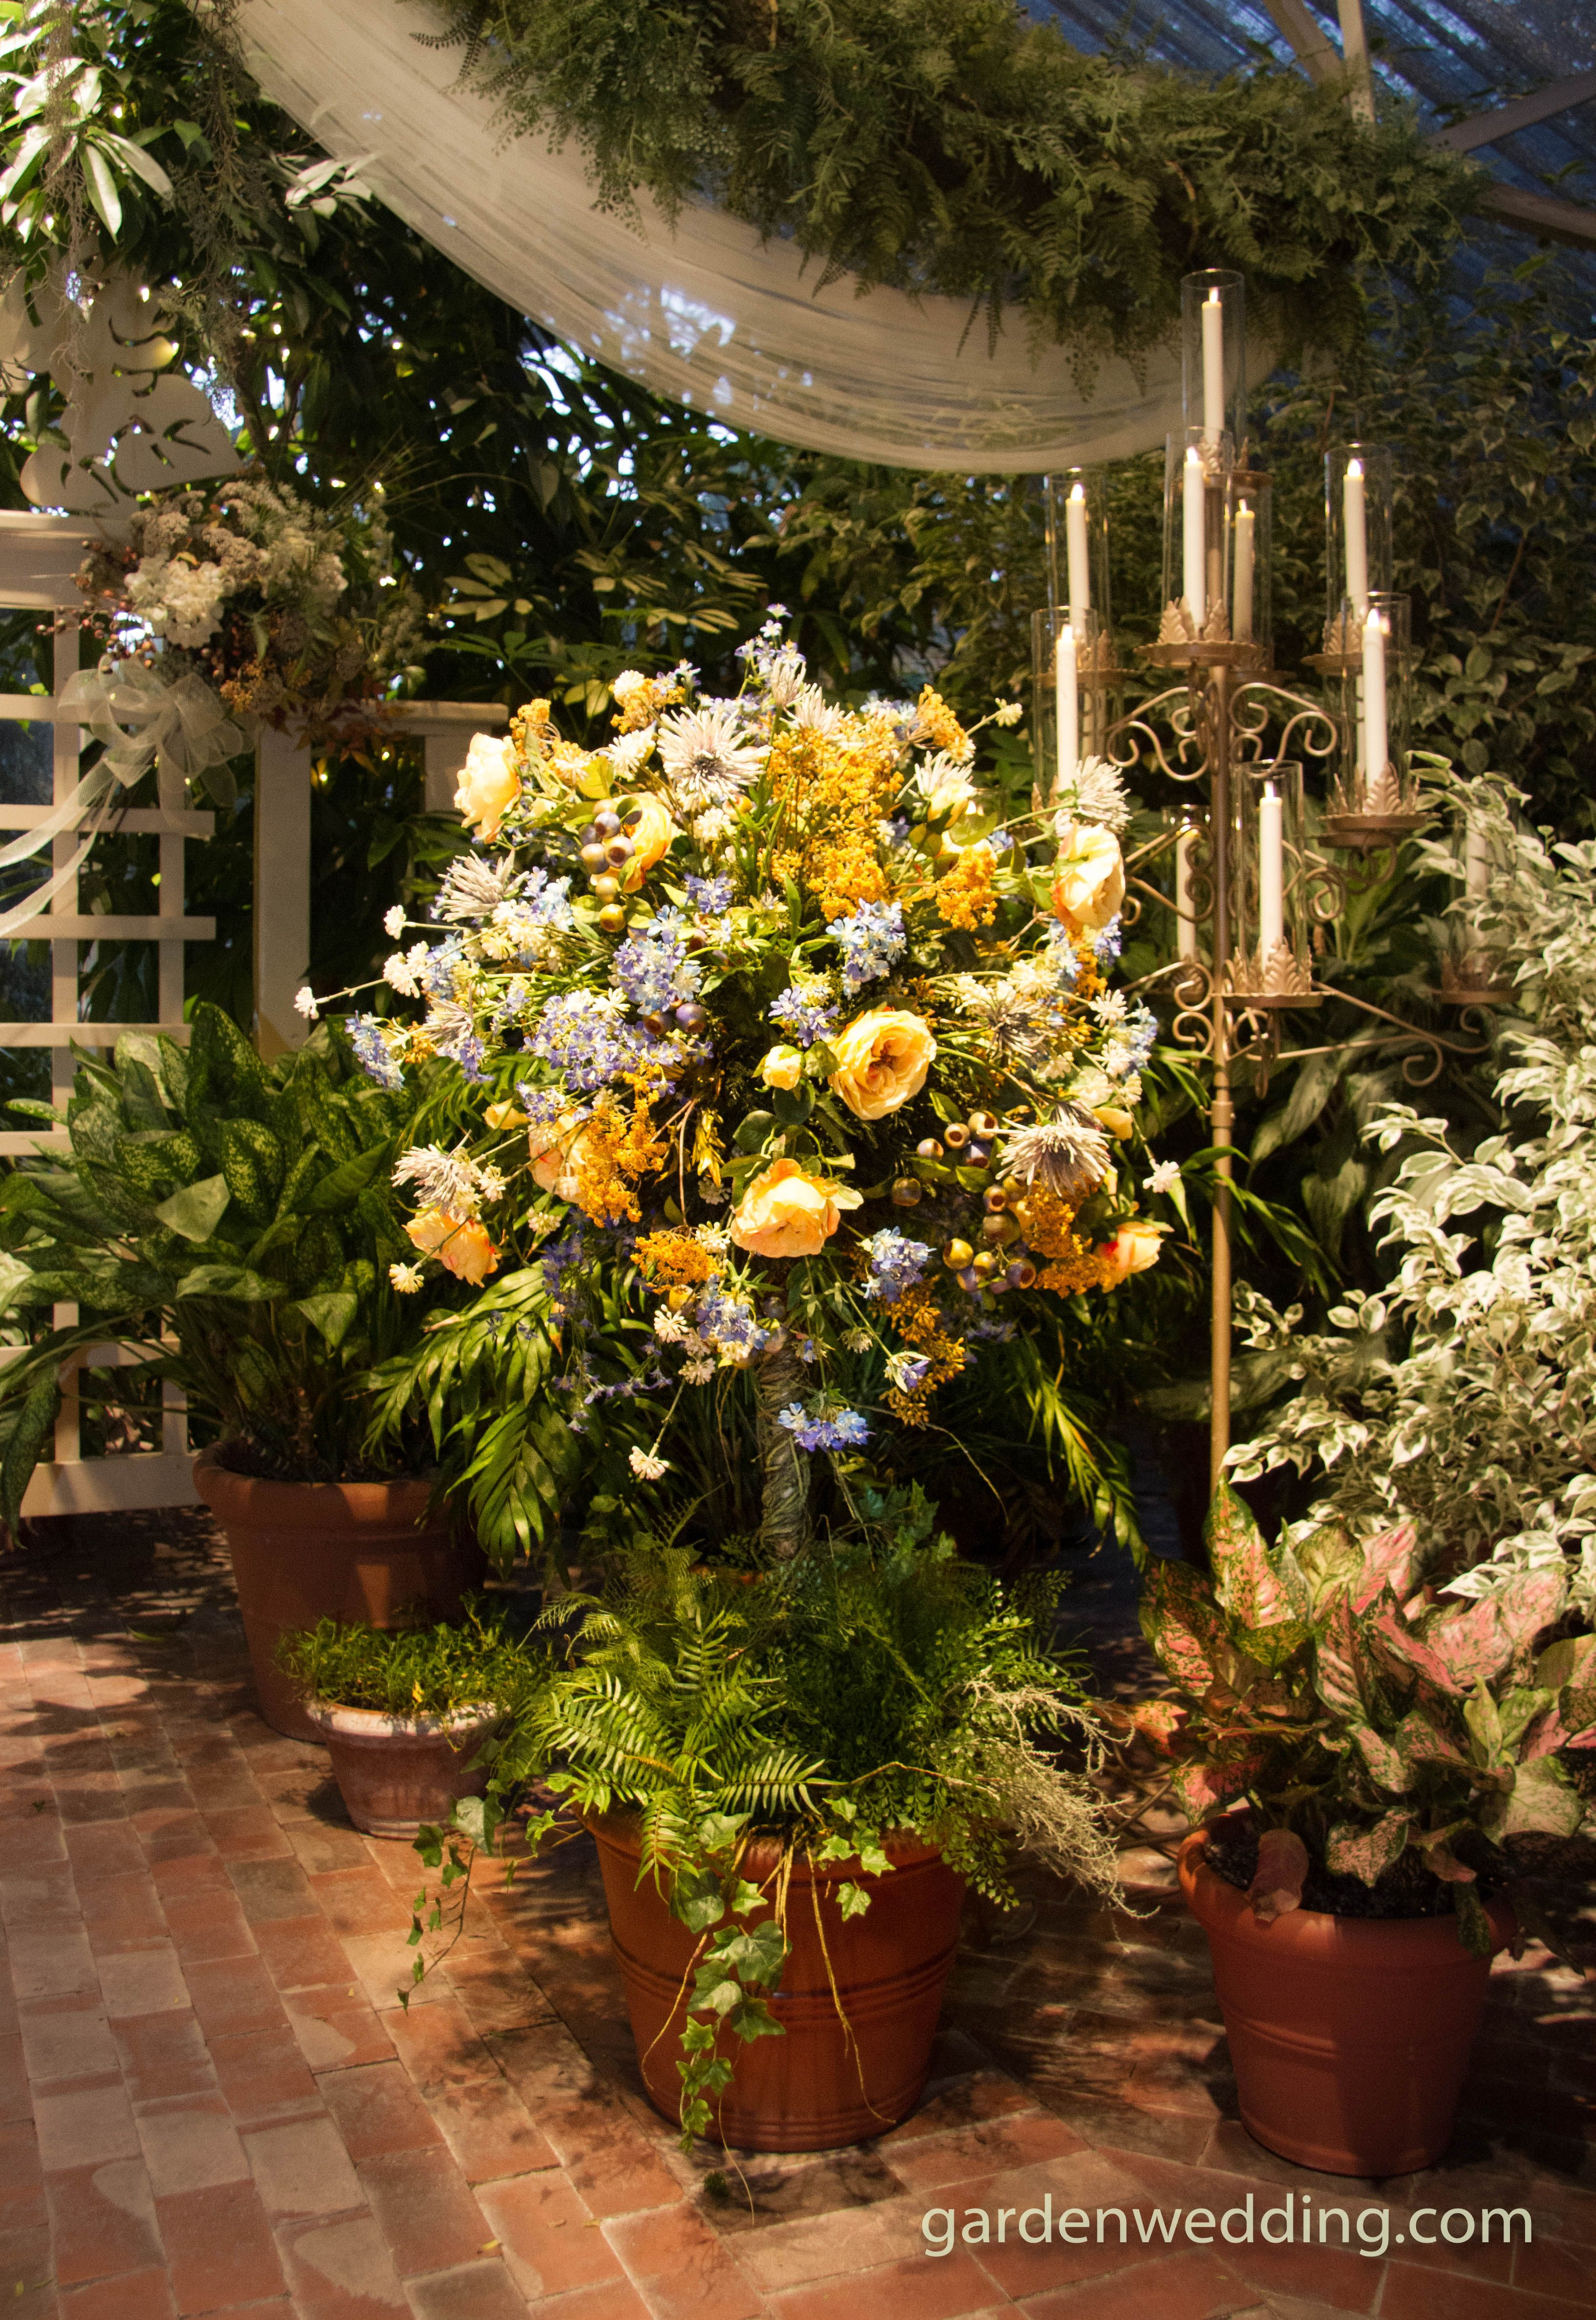 The Conservatory Is An All Glass Tropical Gardenhouse For Weddings In All Seasons Conservatory Website Garden Wedding Venue Conservatory Garden Garden Wedding